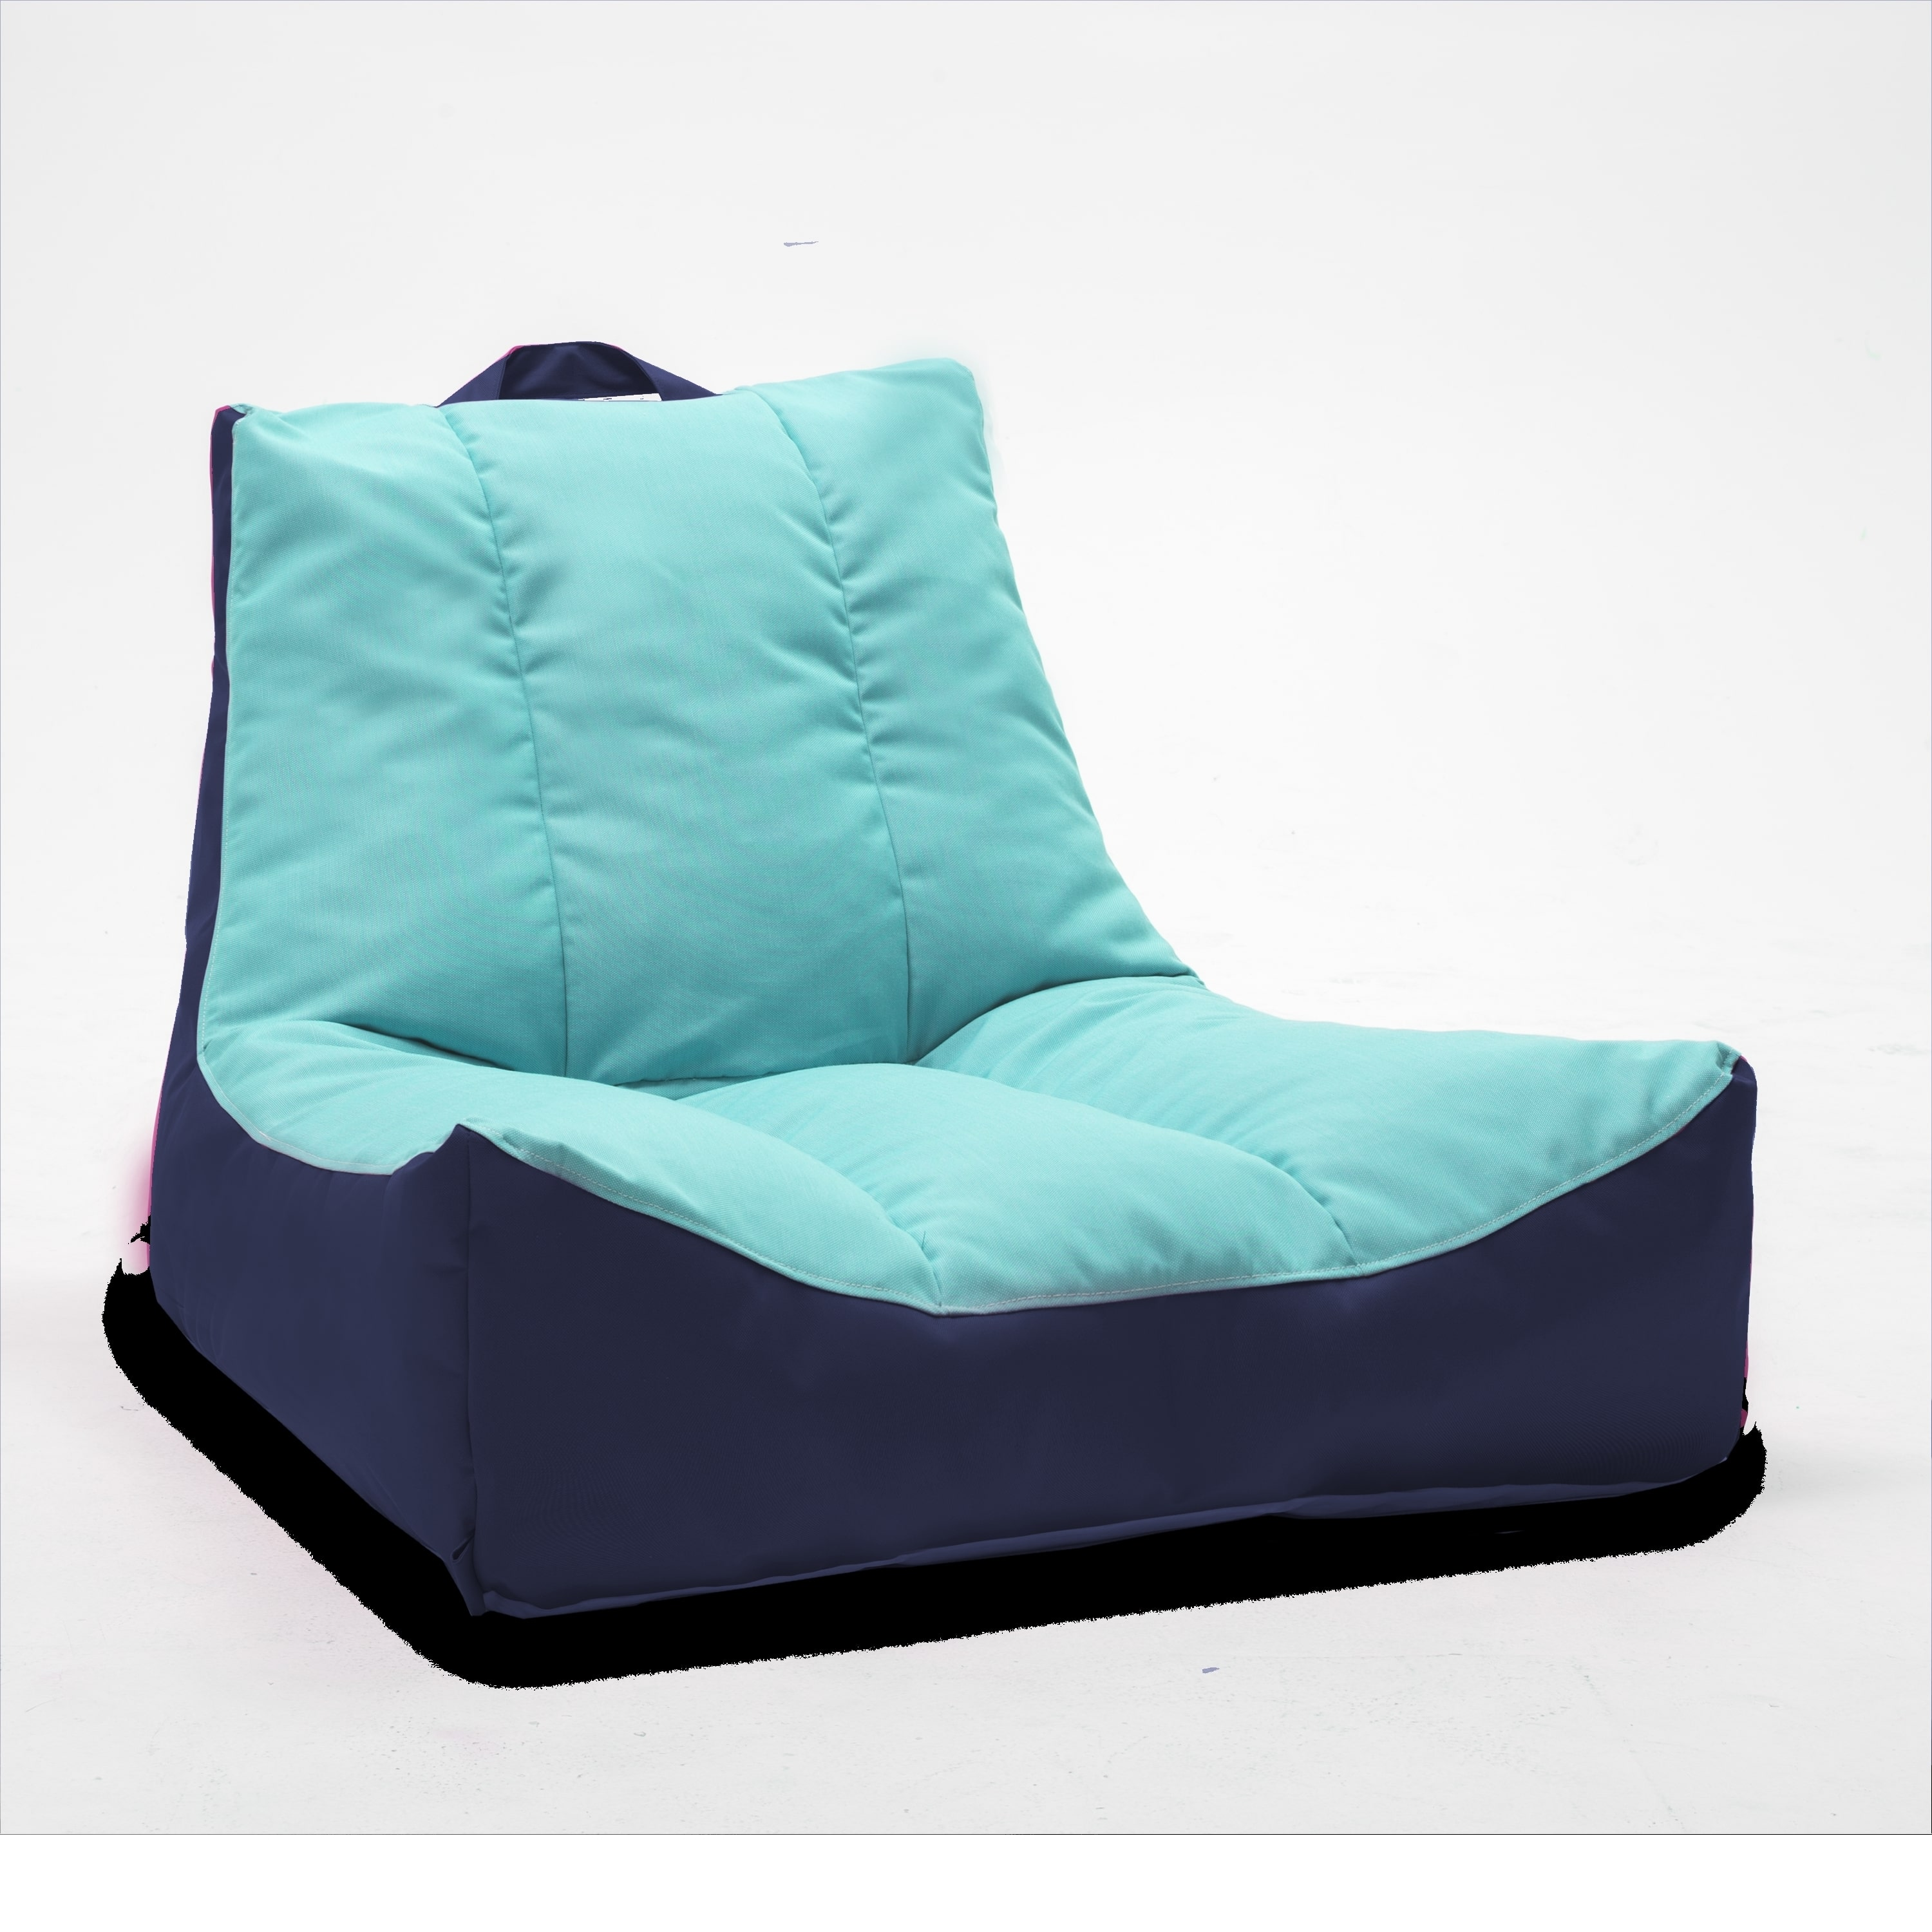 Big Joe Captainu0027s Float & SwimWays Spring Float Recliner XL - Walmart.com islam-shia.org